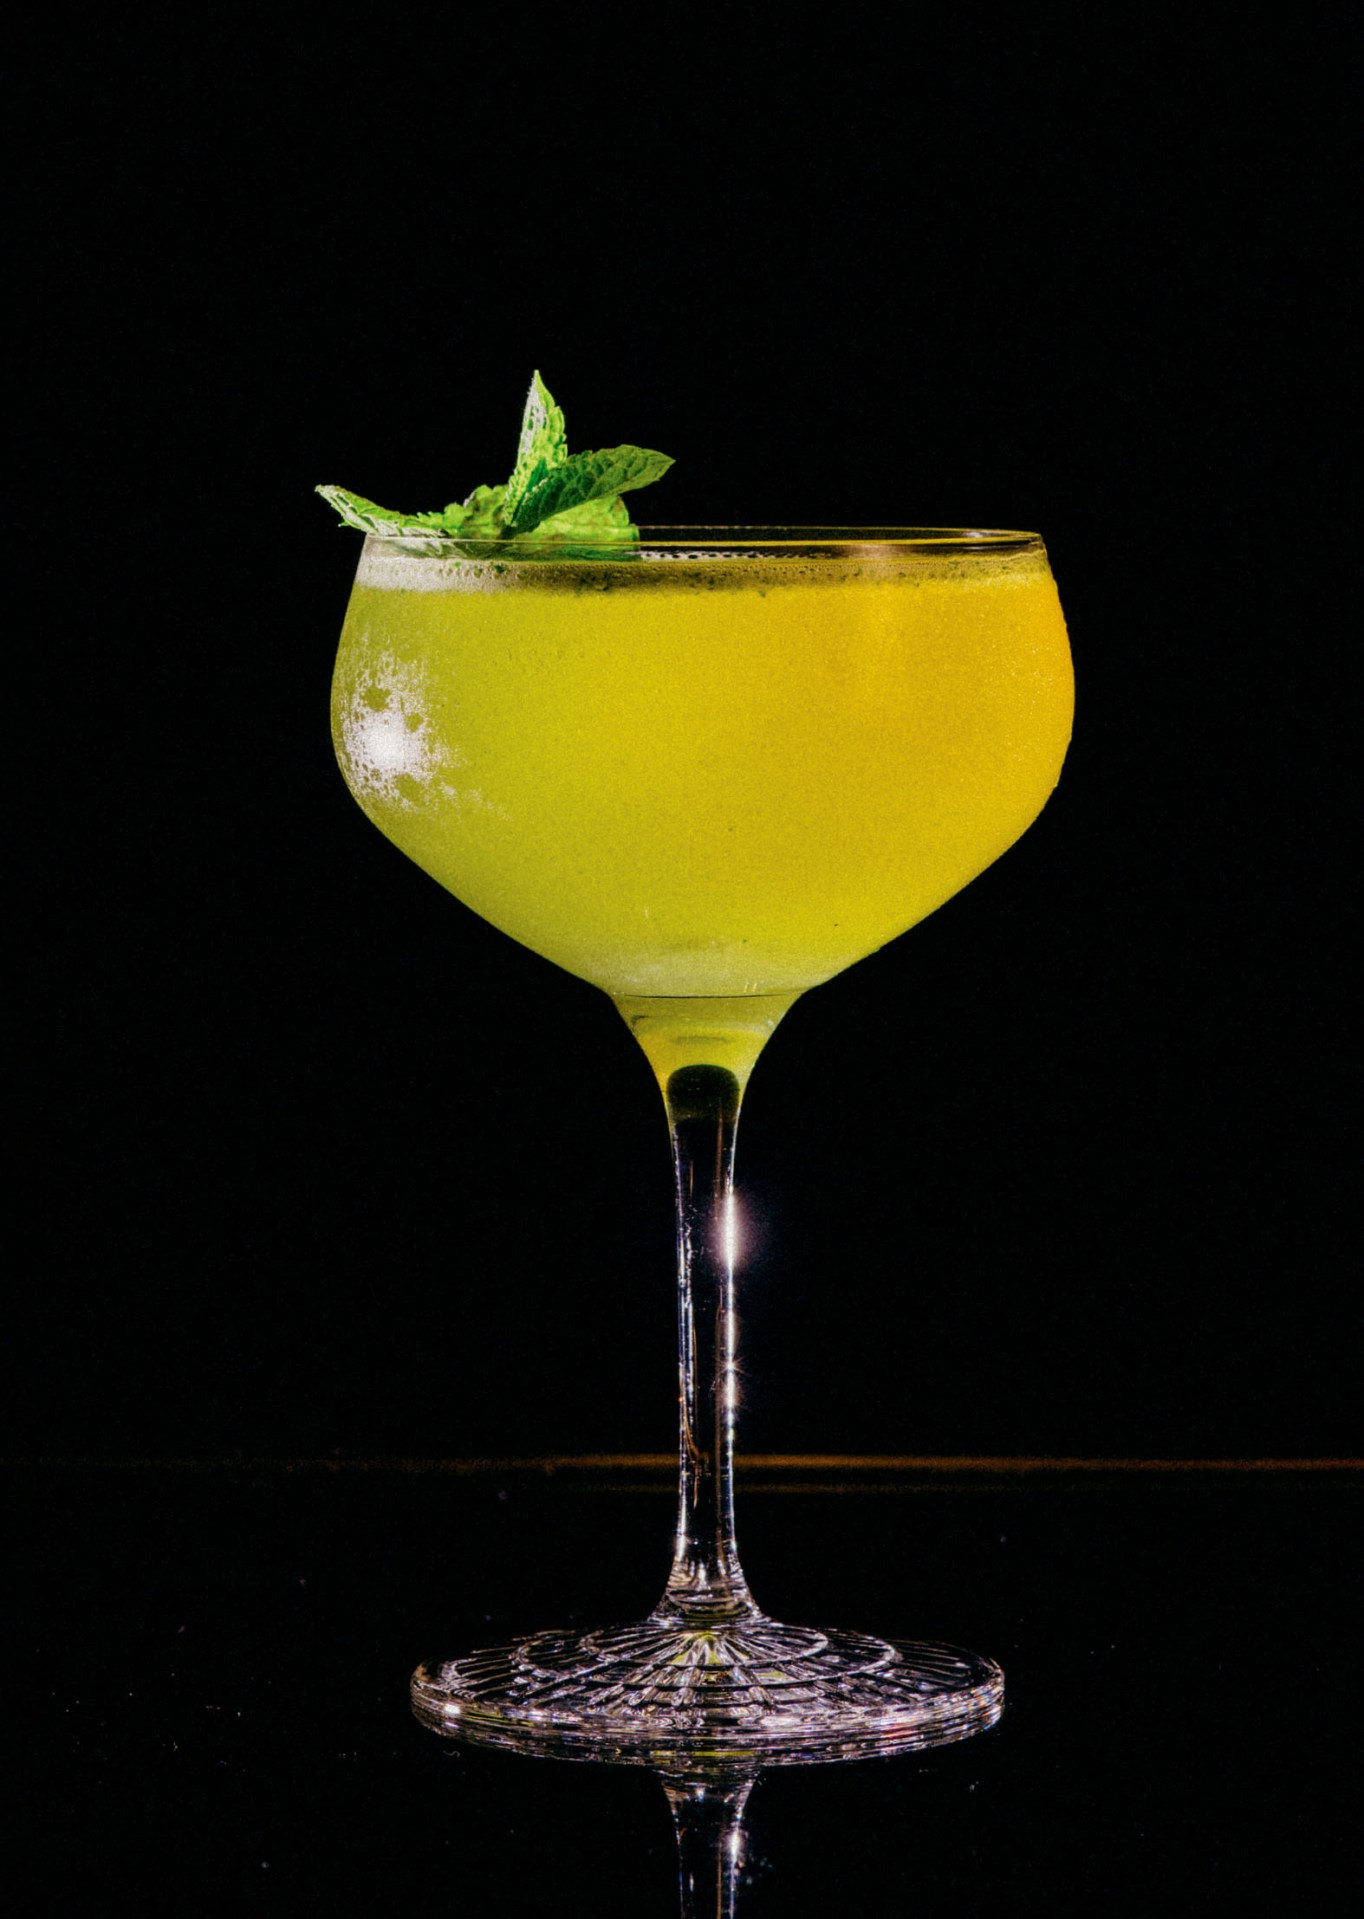 Recipe: 5cl Havana Club Añejo 7 Años 1 Barspoon Cane Sugar 2cl Lime Juice 2 Dashes Angostura Bitters Mint Leaves Filled with Perrier-Jouët Brut Champagne